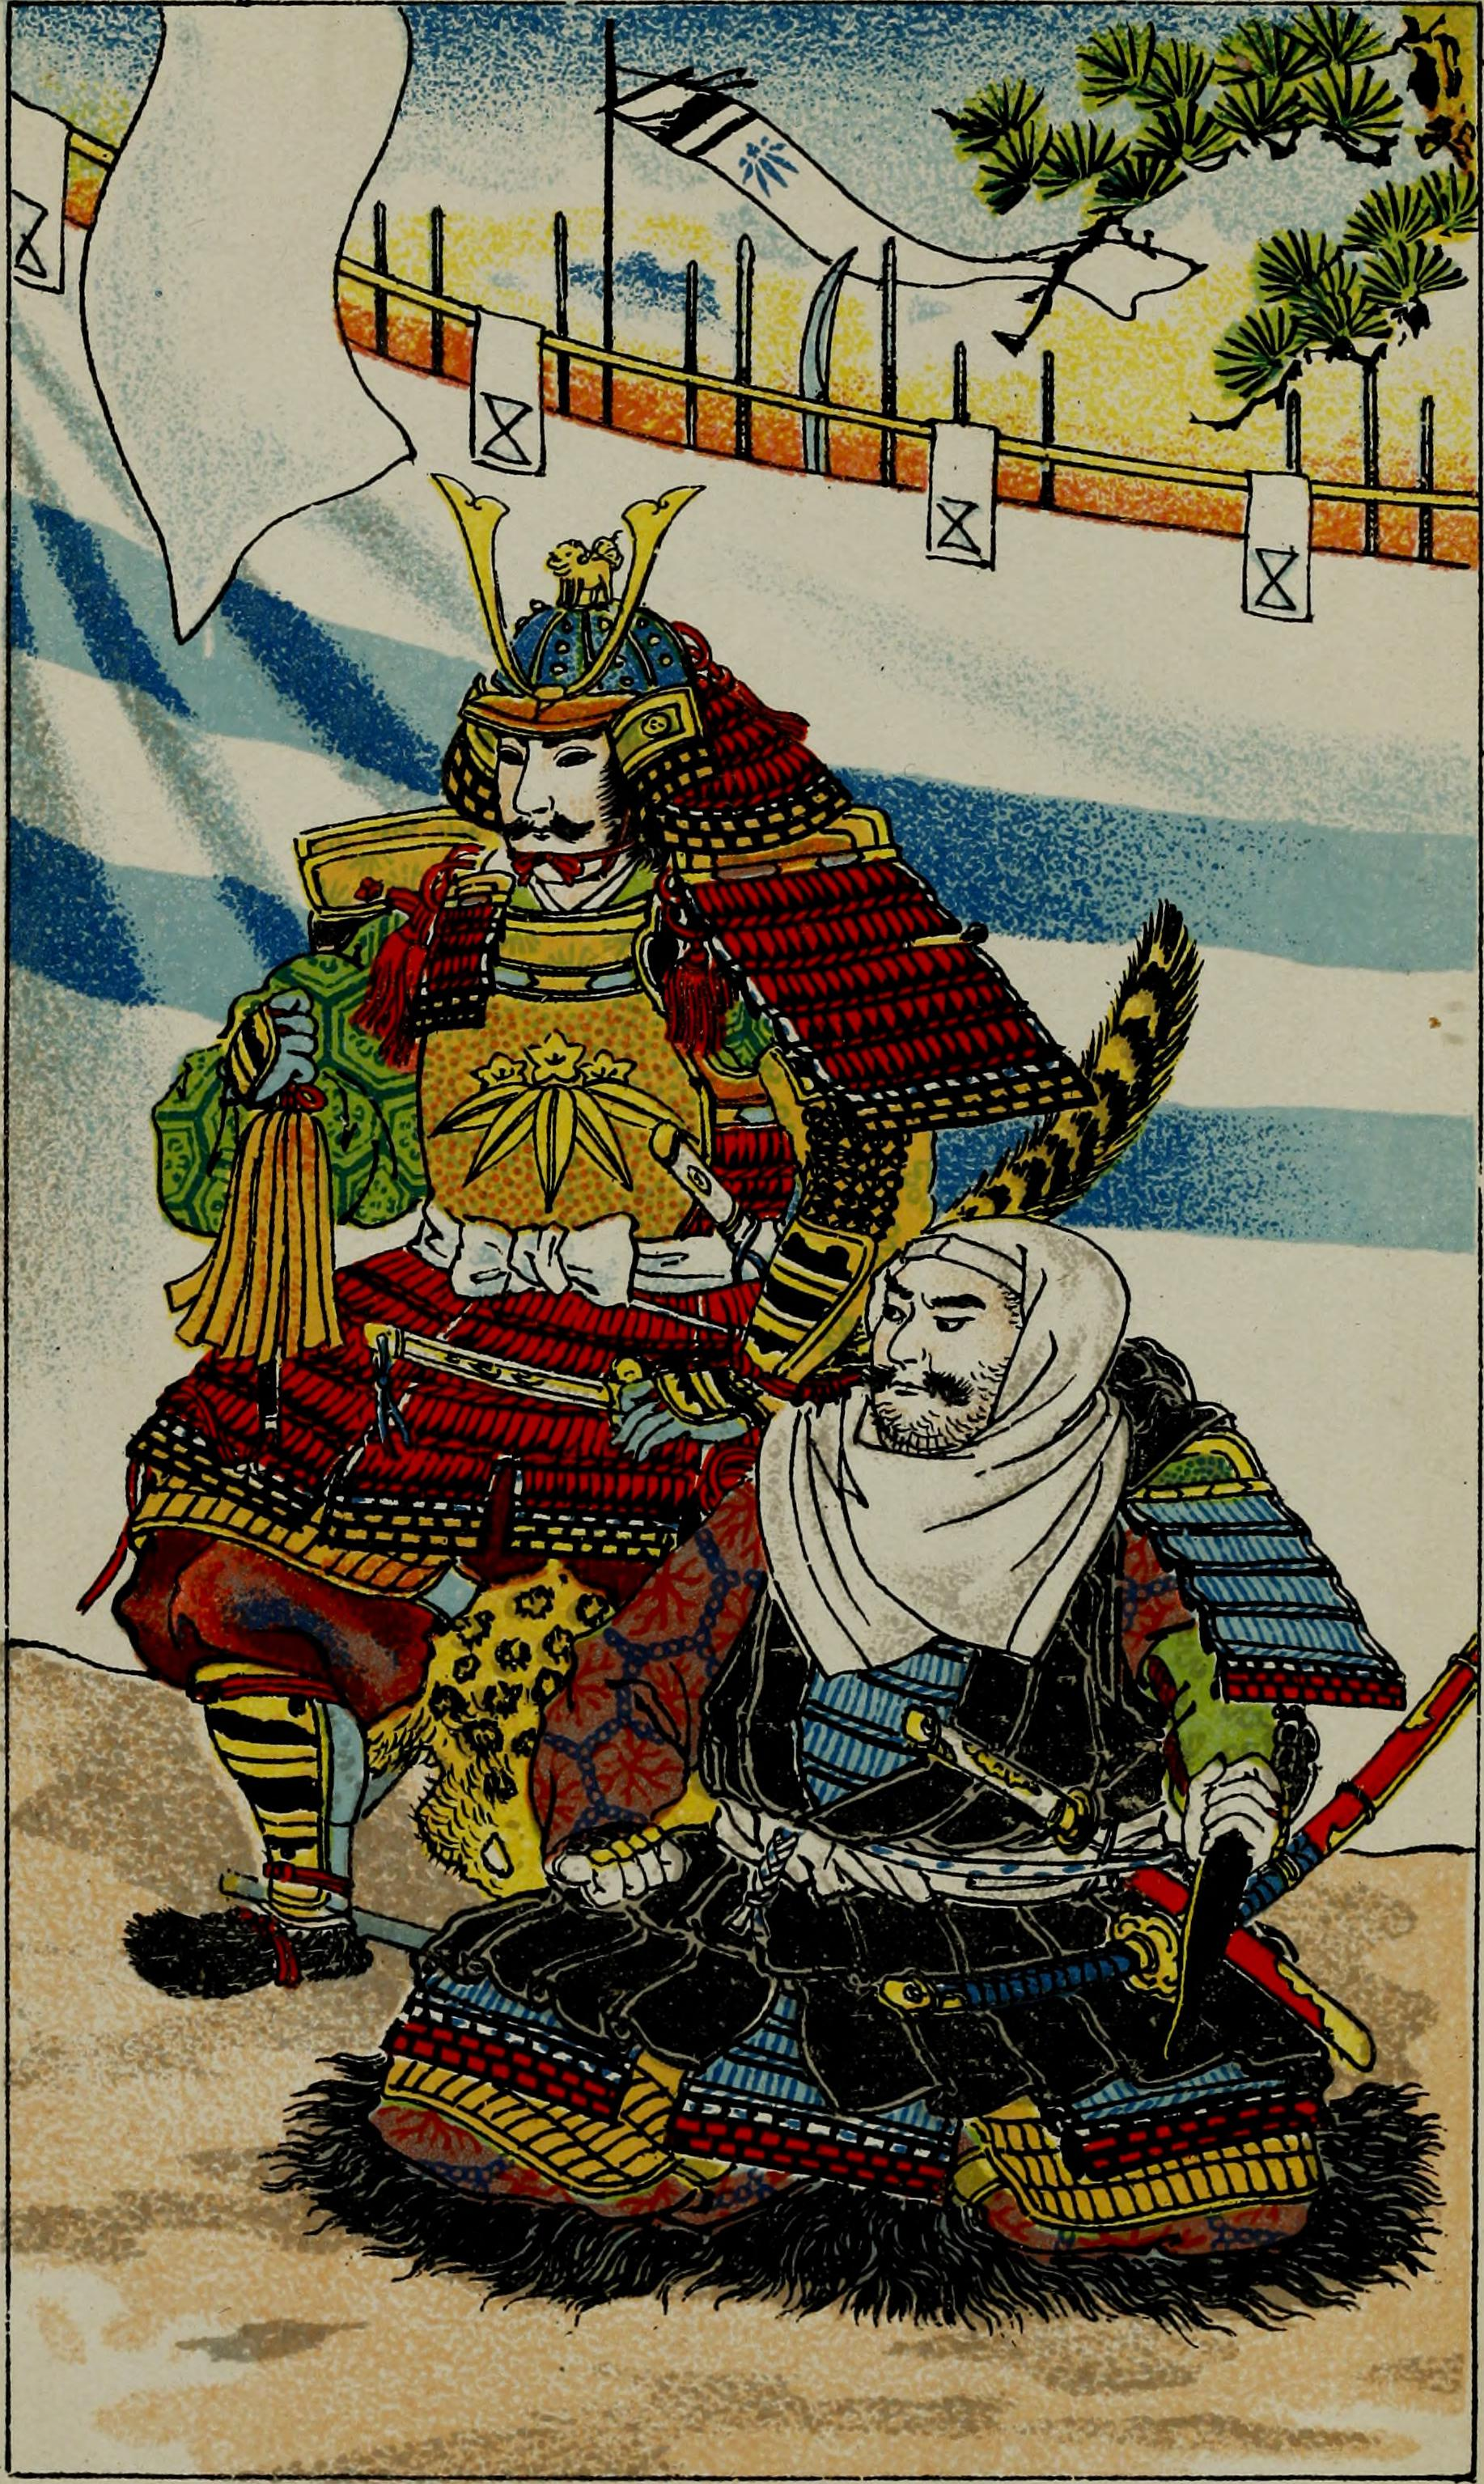 File Saito Musashi Bo Benkei Tales Of The Wars Of The Gempei Being The Story Of The Lives And Adventures Of Iyo No Kami Minamoto Kuro Yoshitsune And Saito Musashi Bo Benkei The Warrior Monk 1910 The analysis paints a clear picture. https commons wikimedia org wiki file saito musashi bo benkei tales of the wars of the gempei being the story of the lives and adventures of iyo no kami minamoto kuro yoshitsune and saito musashi bo benkei the warrior monk 1910 14780268451 jpg